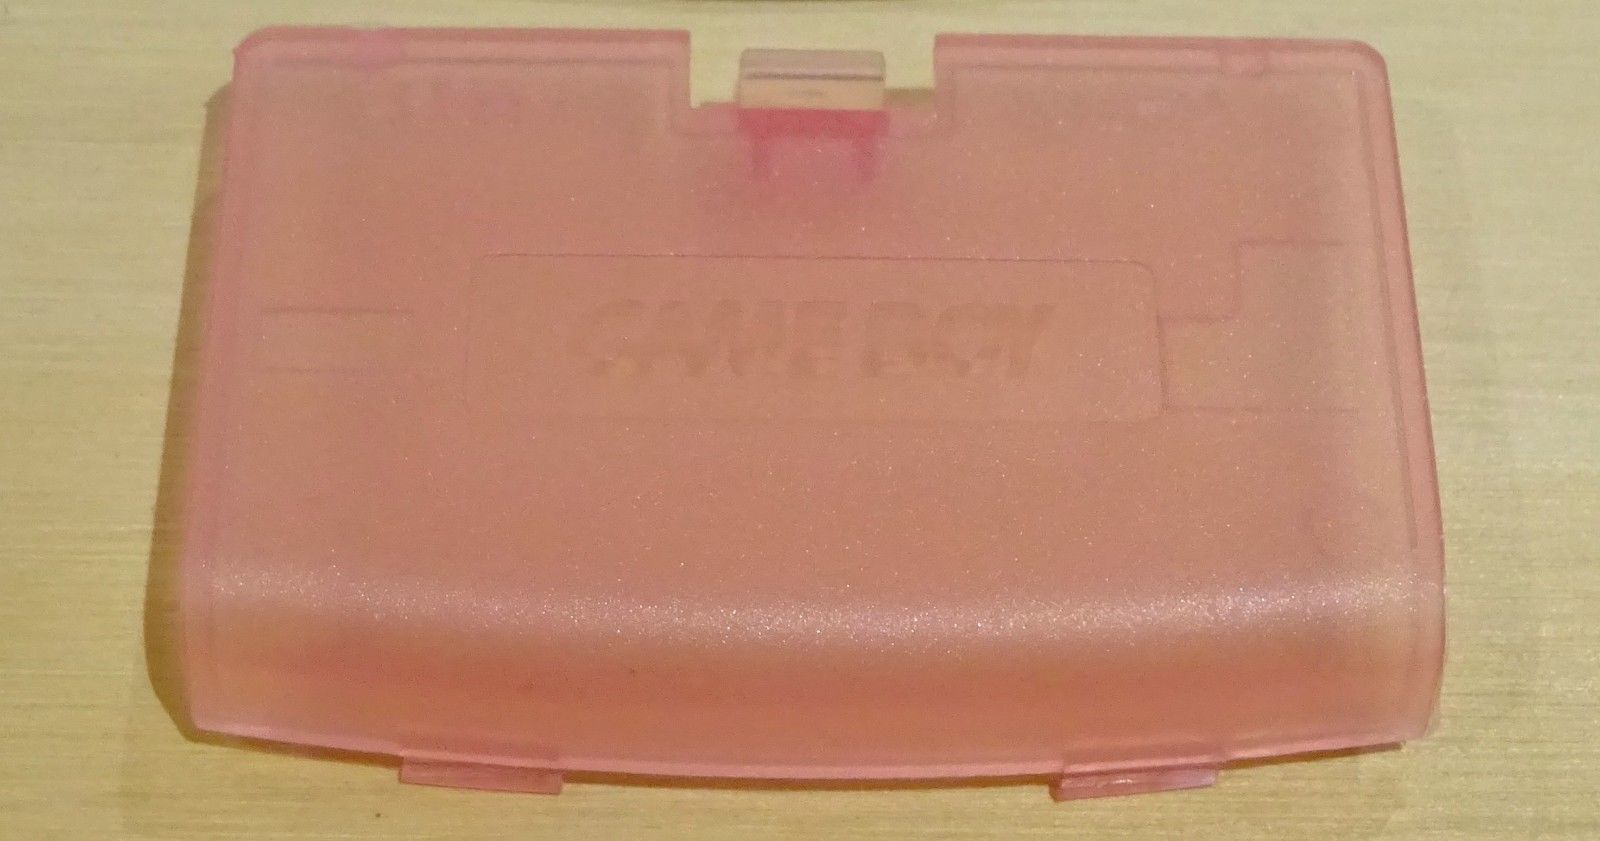 New PINK Battery Cover for Game Boy Advance System - GBA Door Lot of 25